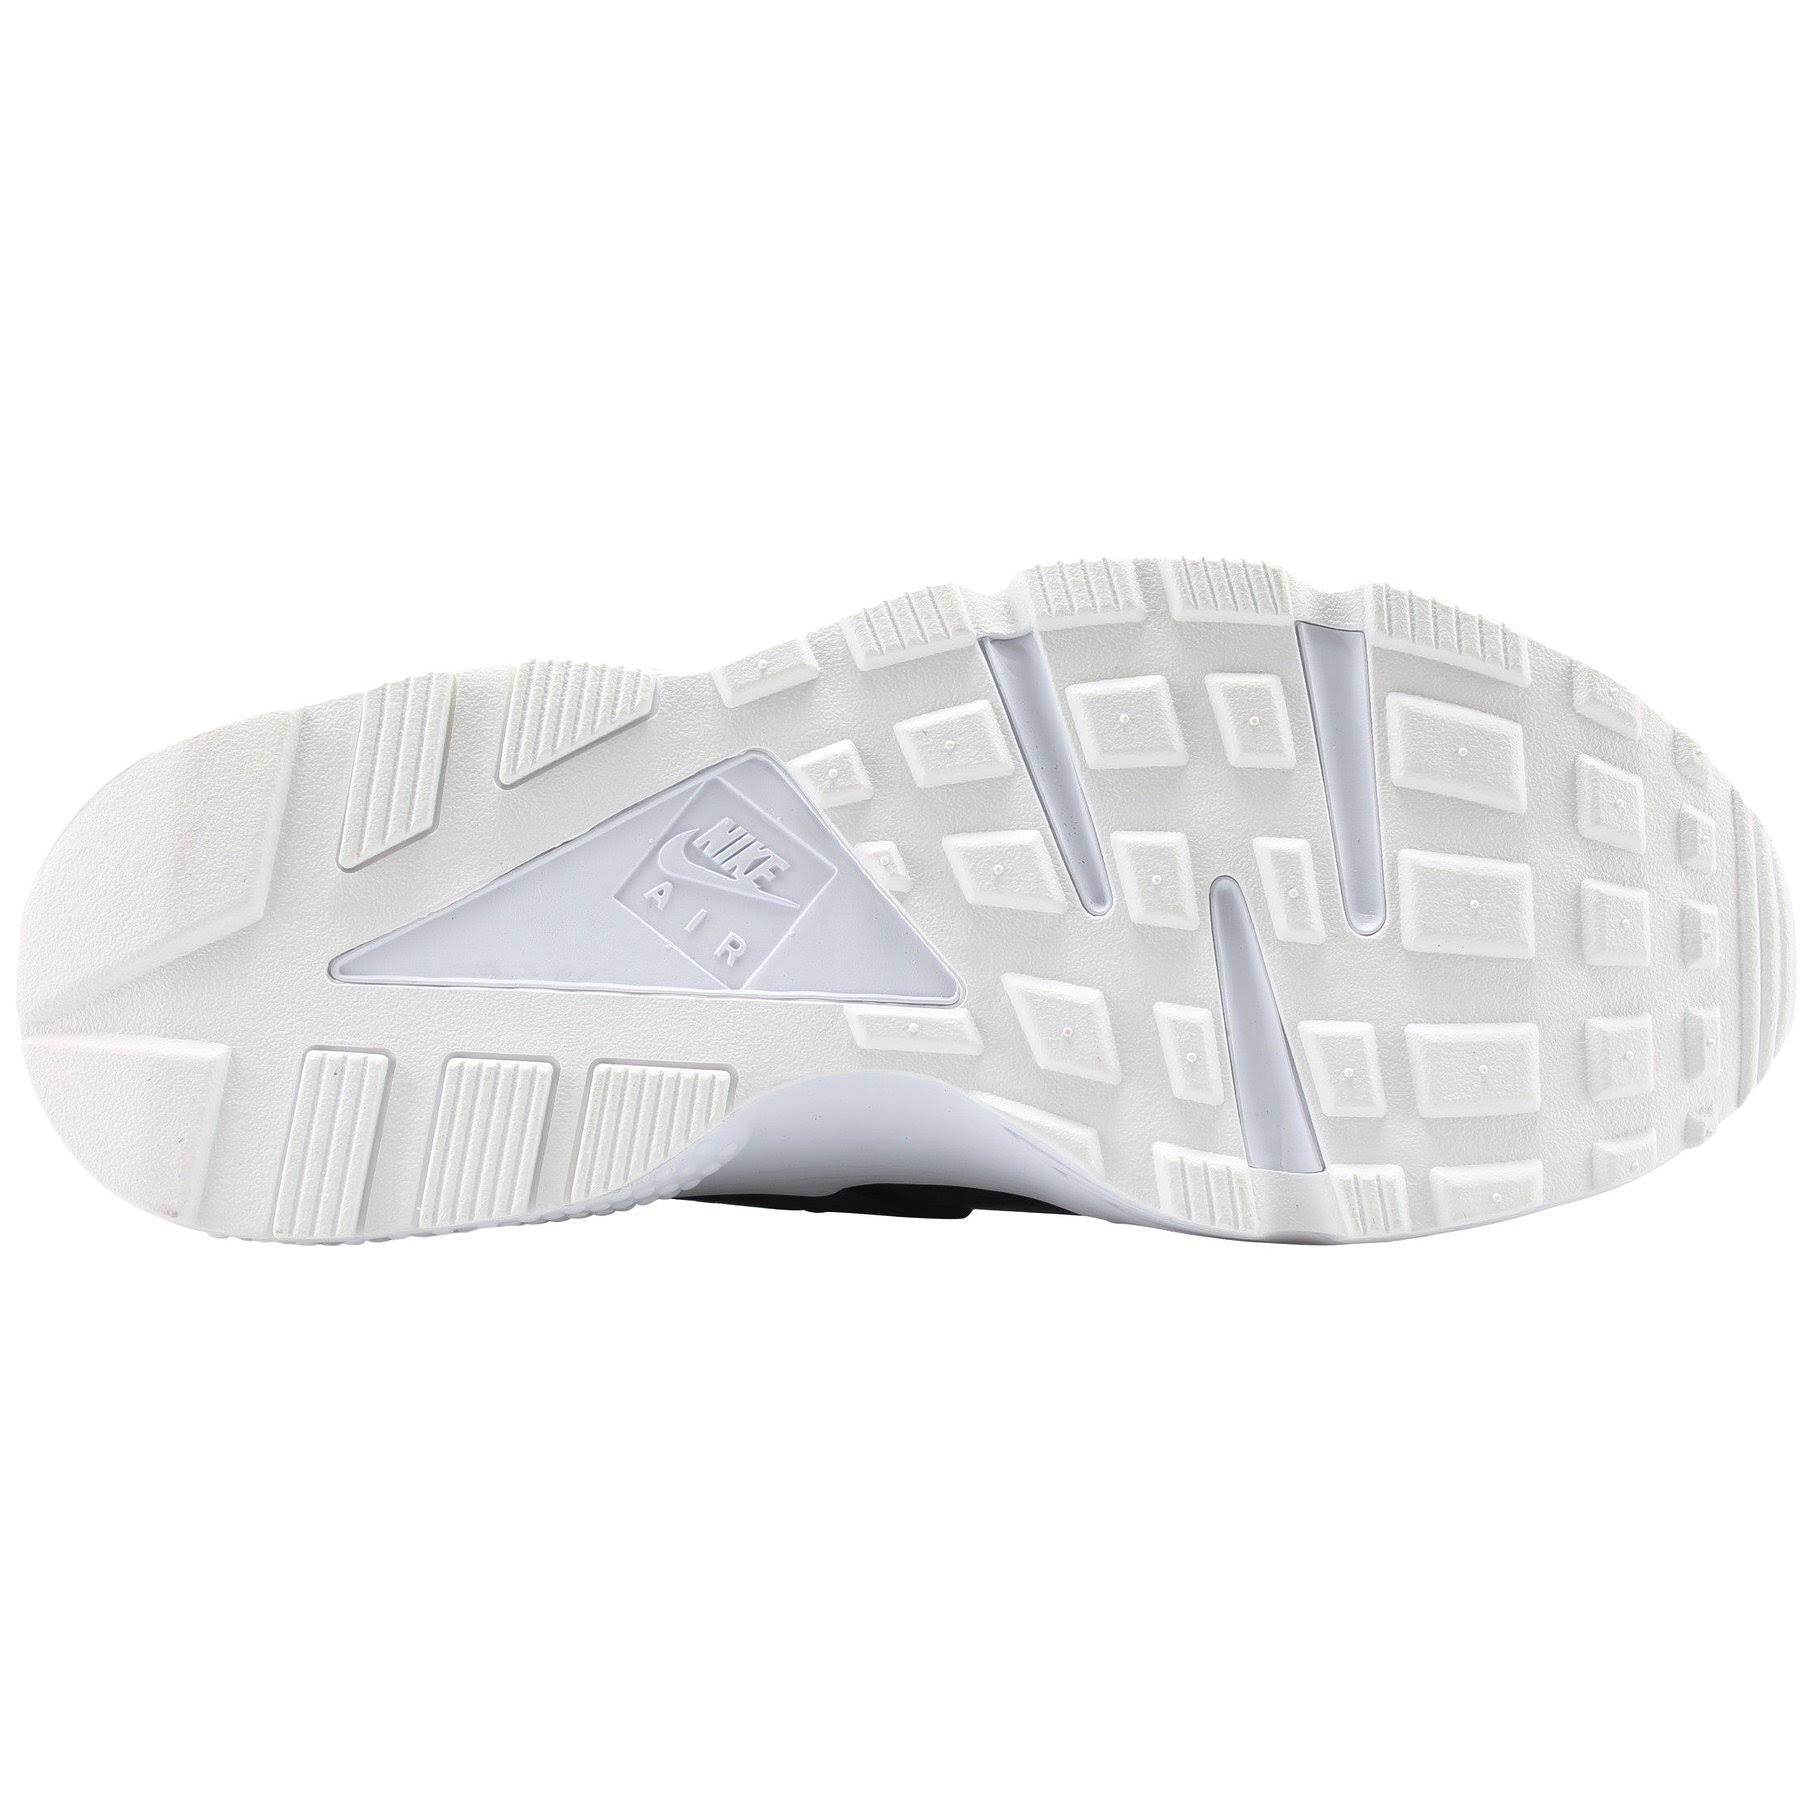 Style white 318429 pure Nike Mens gym 9 Platinum Air white Bue Huarache Obsidian Blue txt8w6gq